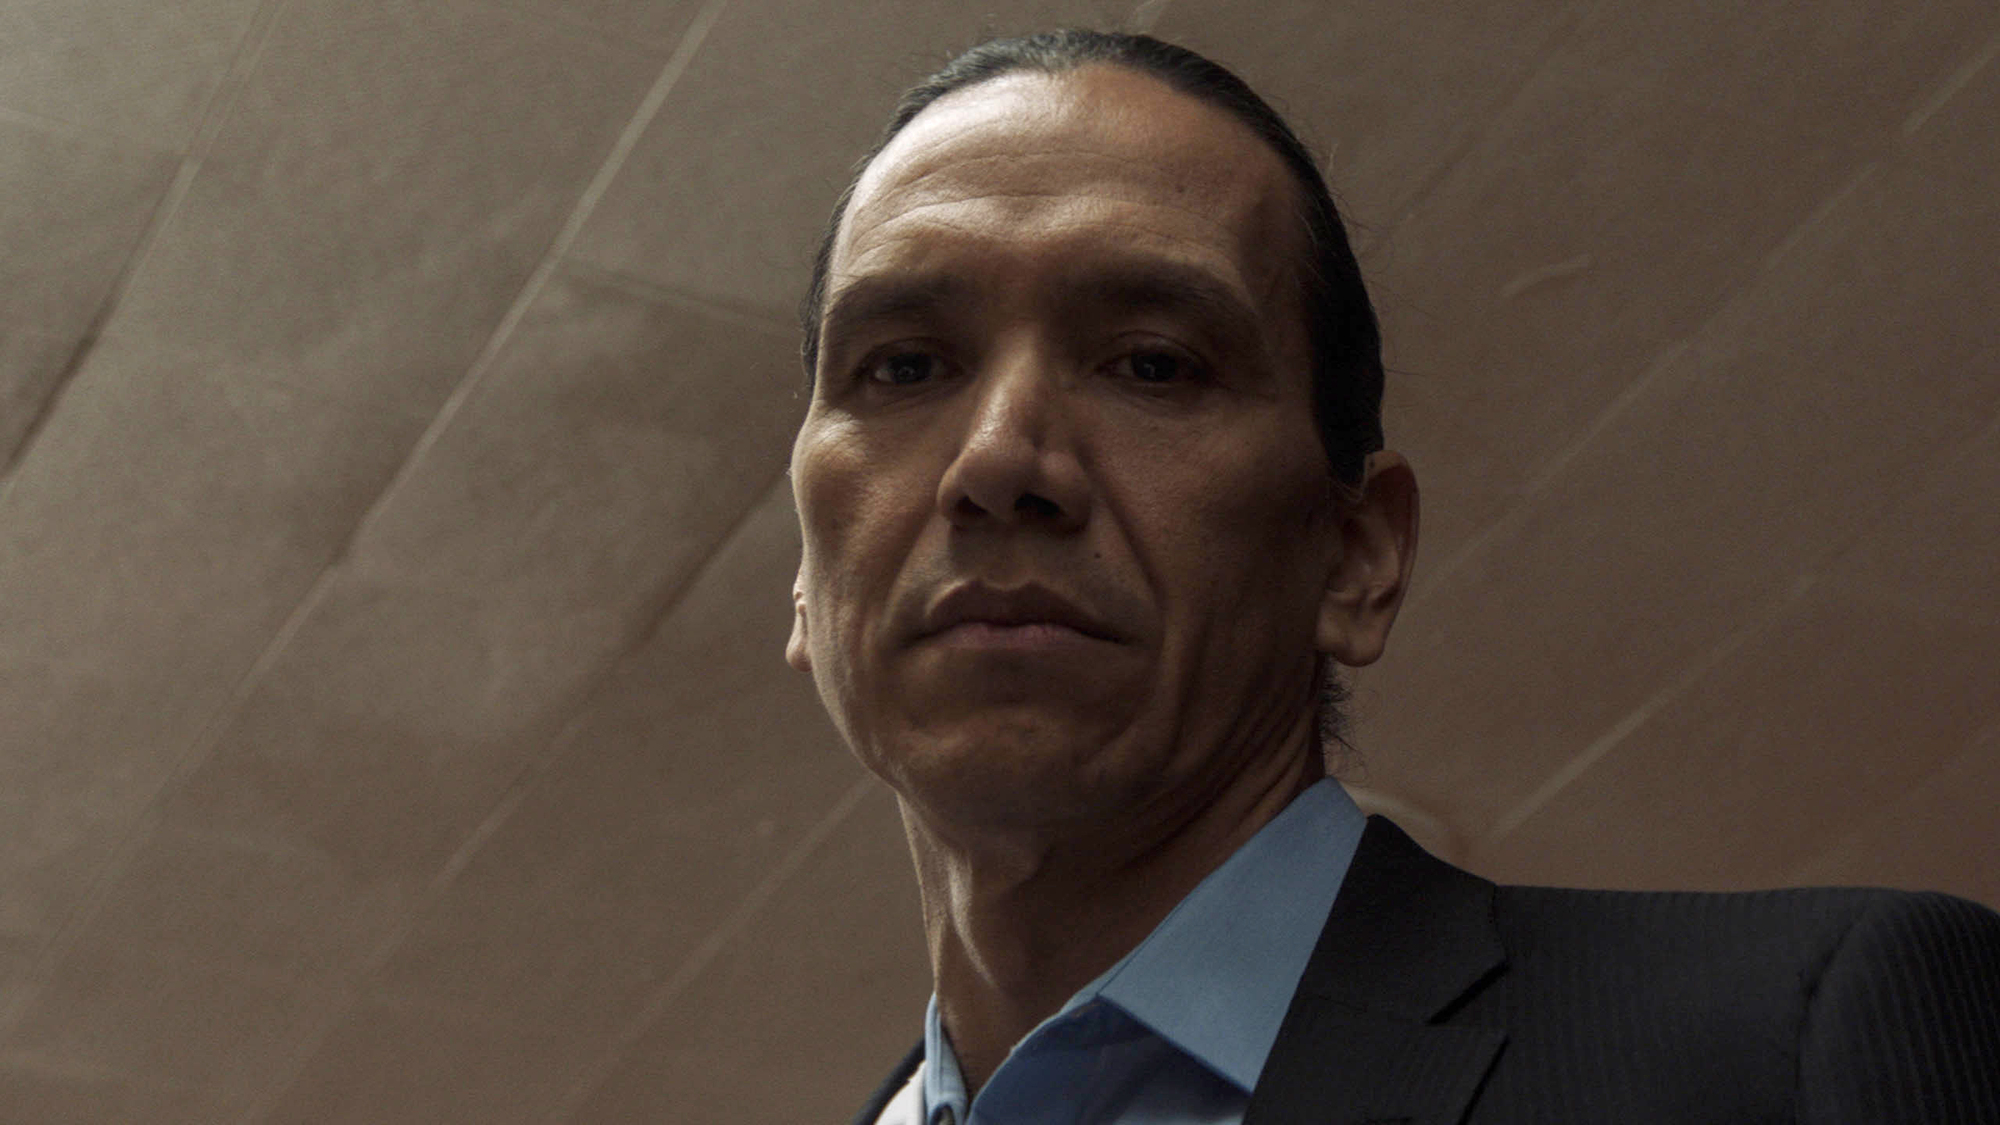 Michael Greyeyes appears in 'Wild Indian.'